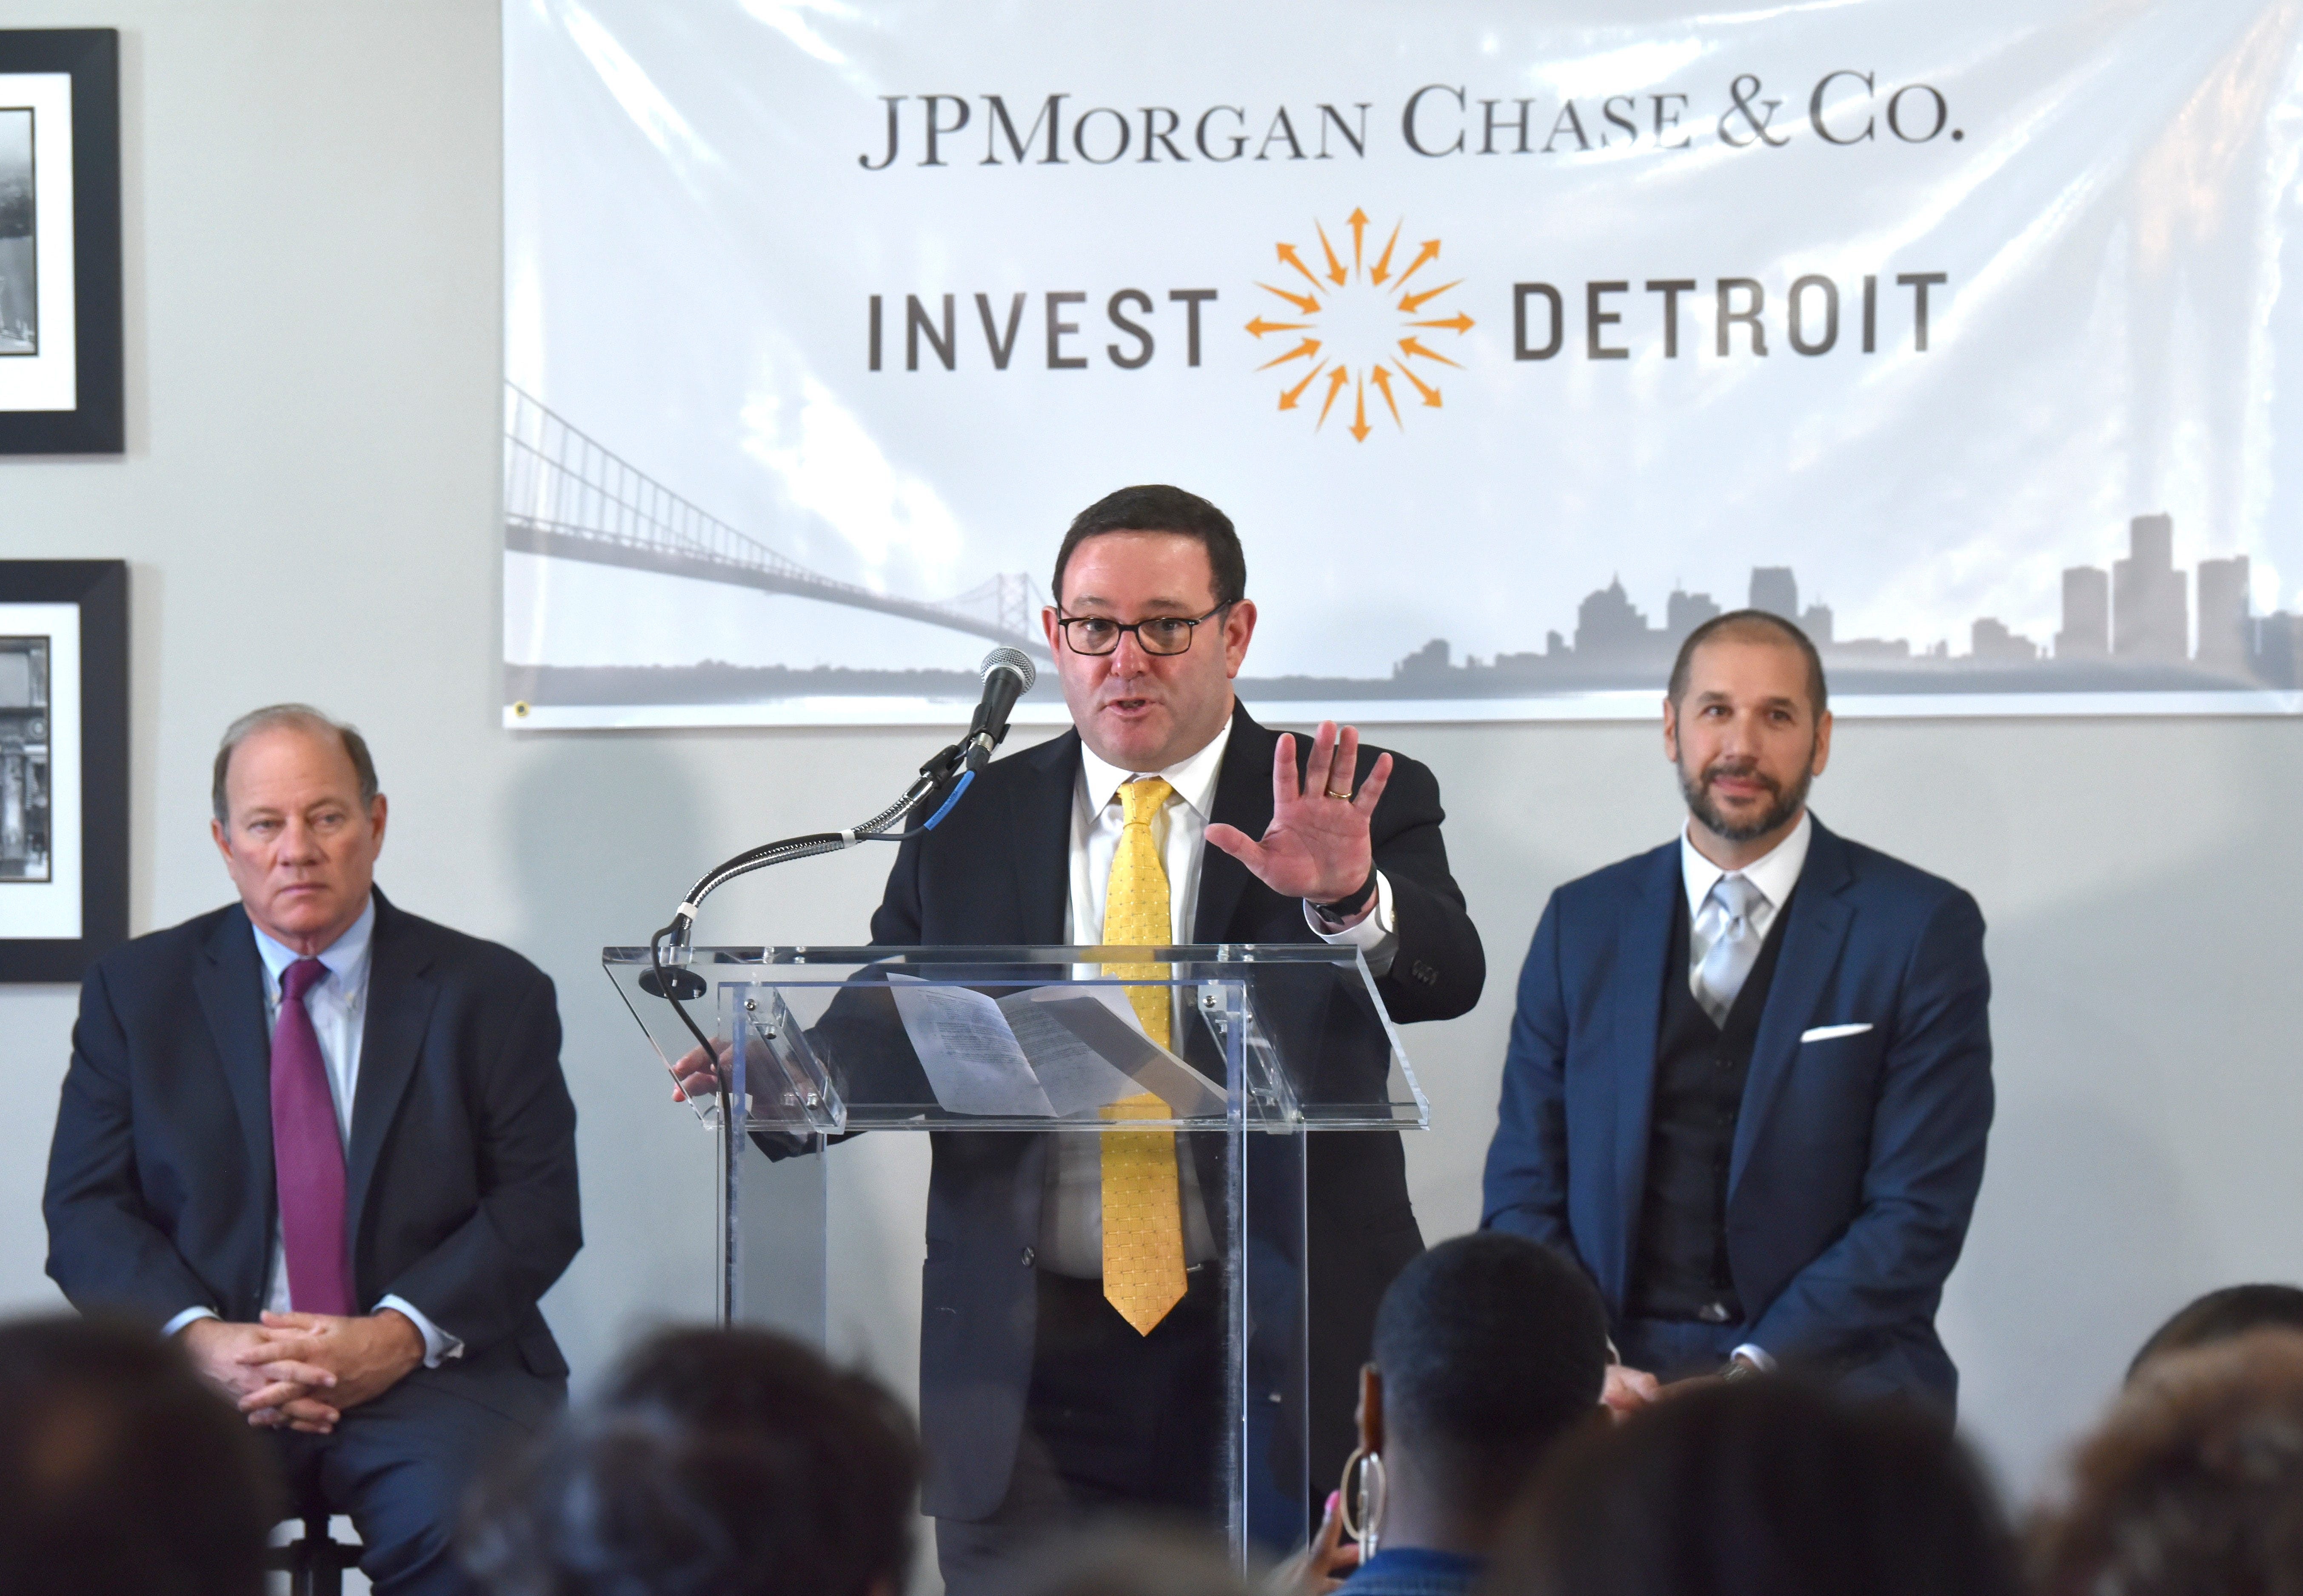 Peter Scher, center, head of corporate responsibility at JPMorgan Chase, announces a $15 investment in Detroit neighborhoods as Detroit Mayor Mike Duggan, left, and Invest Detroit CEO Dave Blaszkiewicz, right, listen.